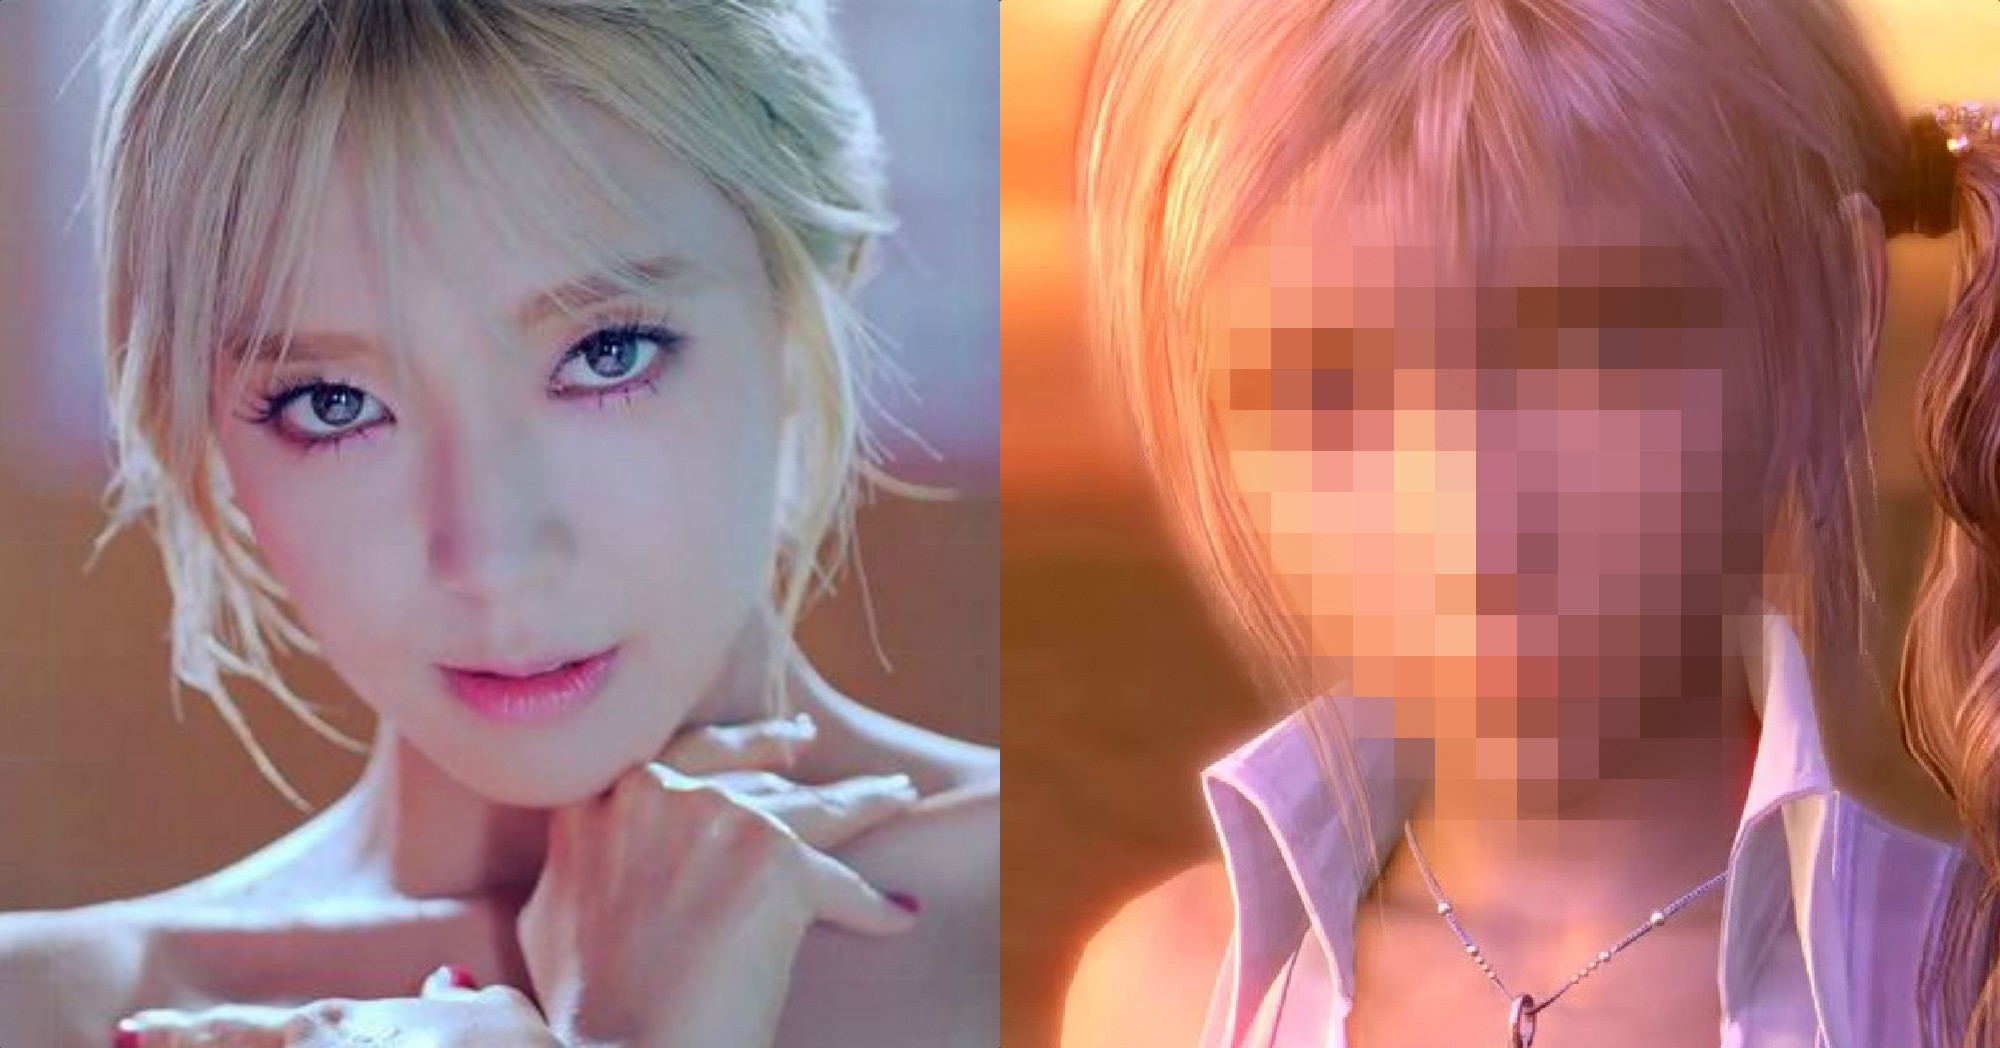 This Final Fantasy Character Looks Like She Was Modelled After AOAs Choa